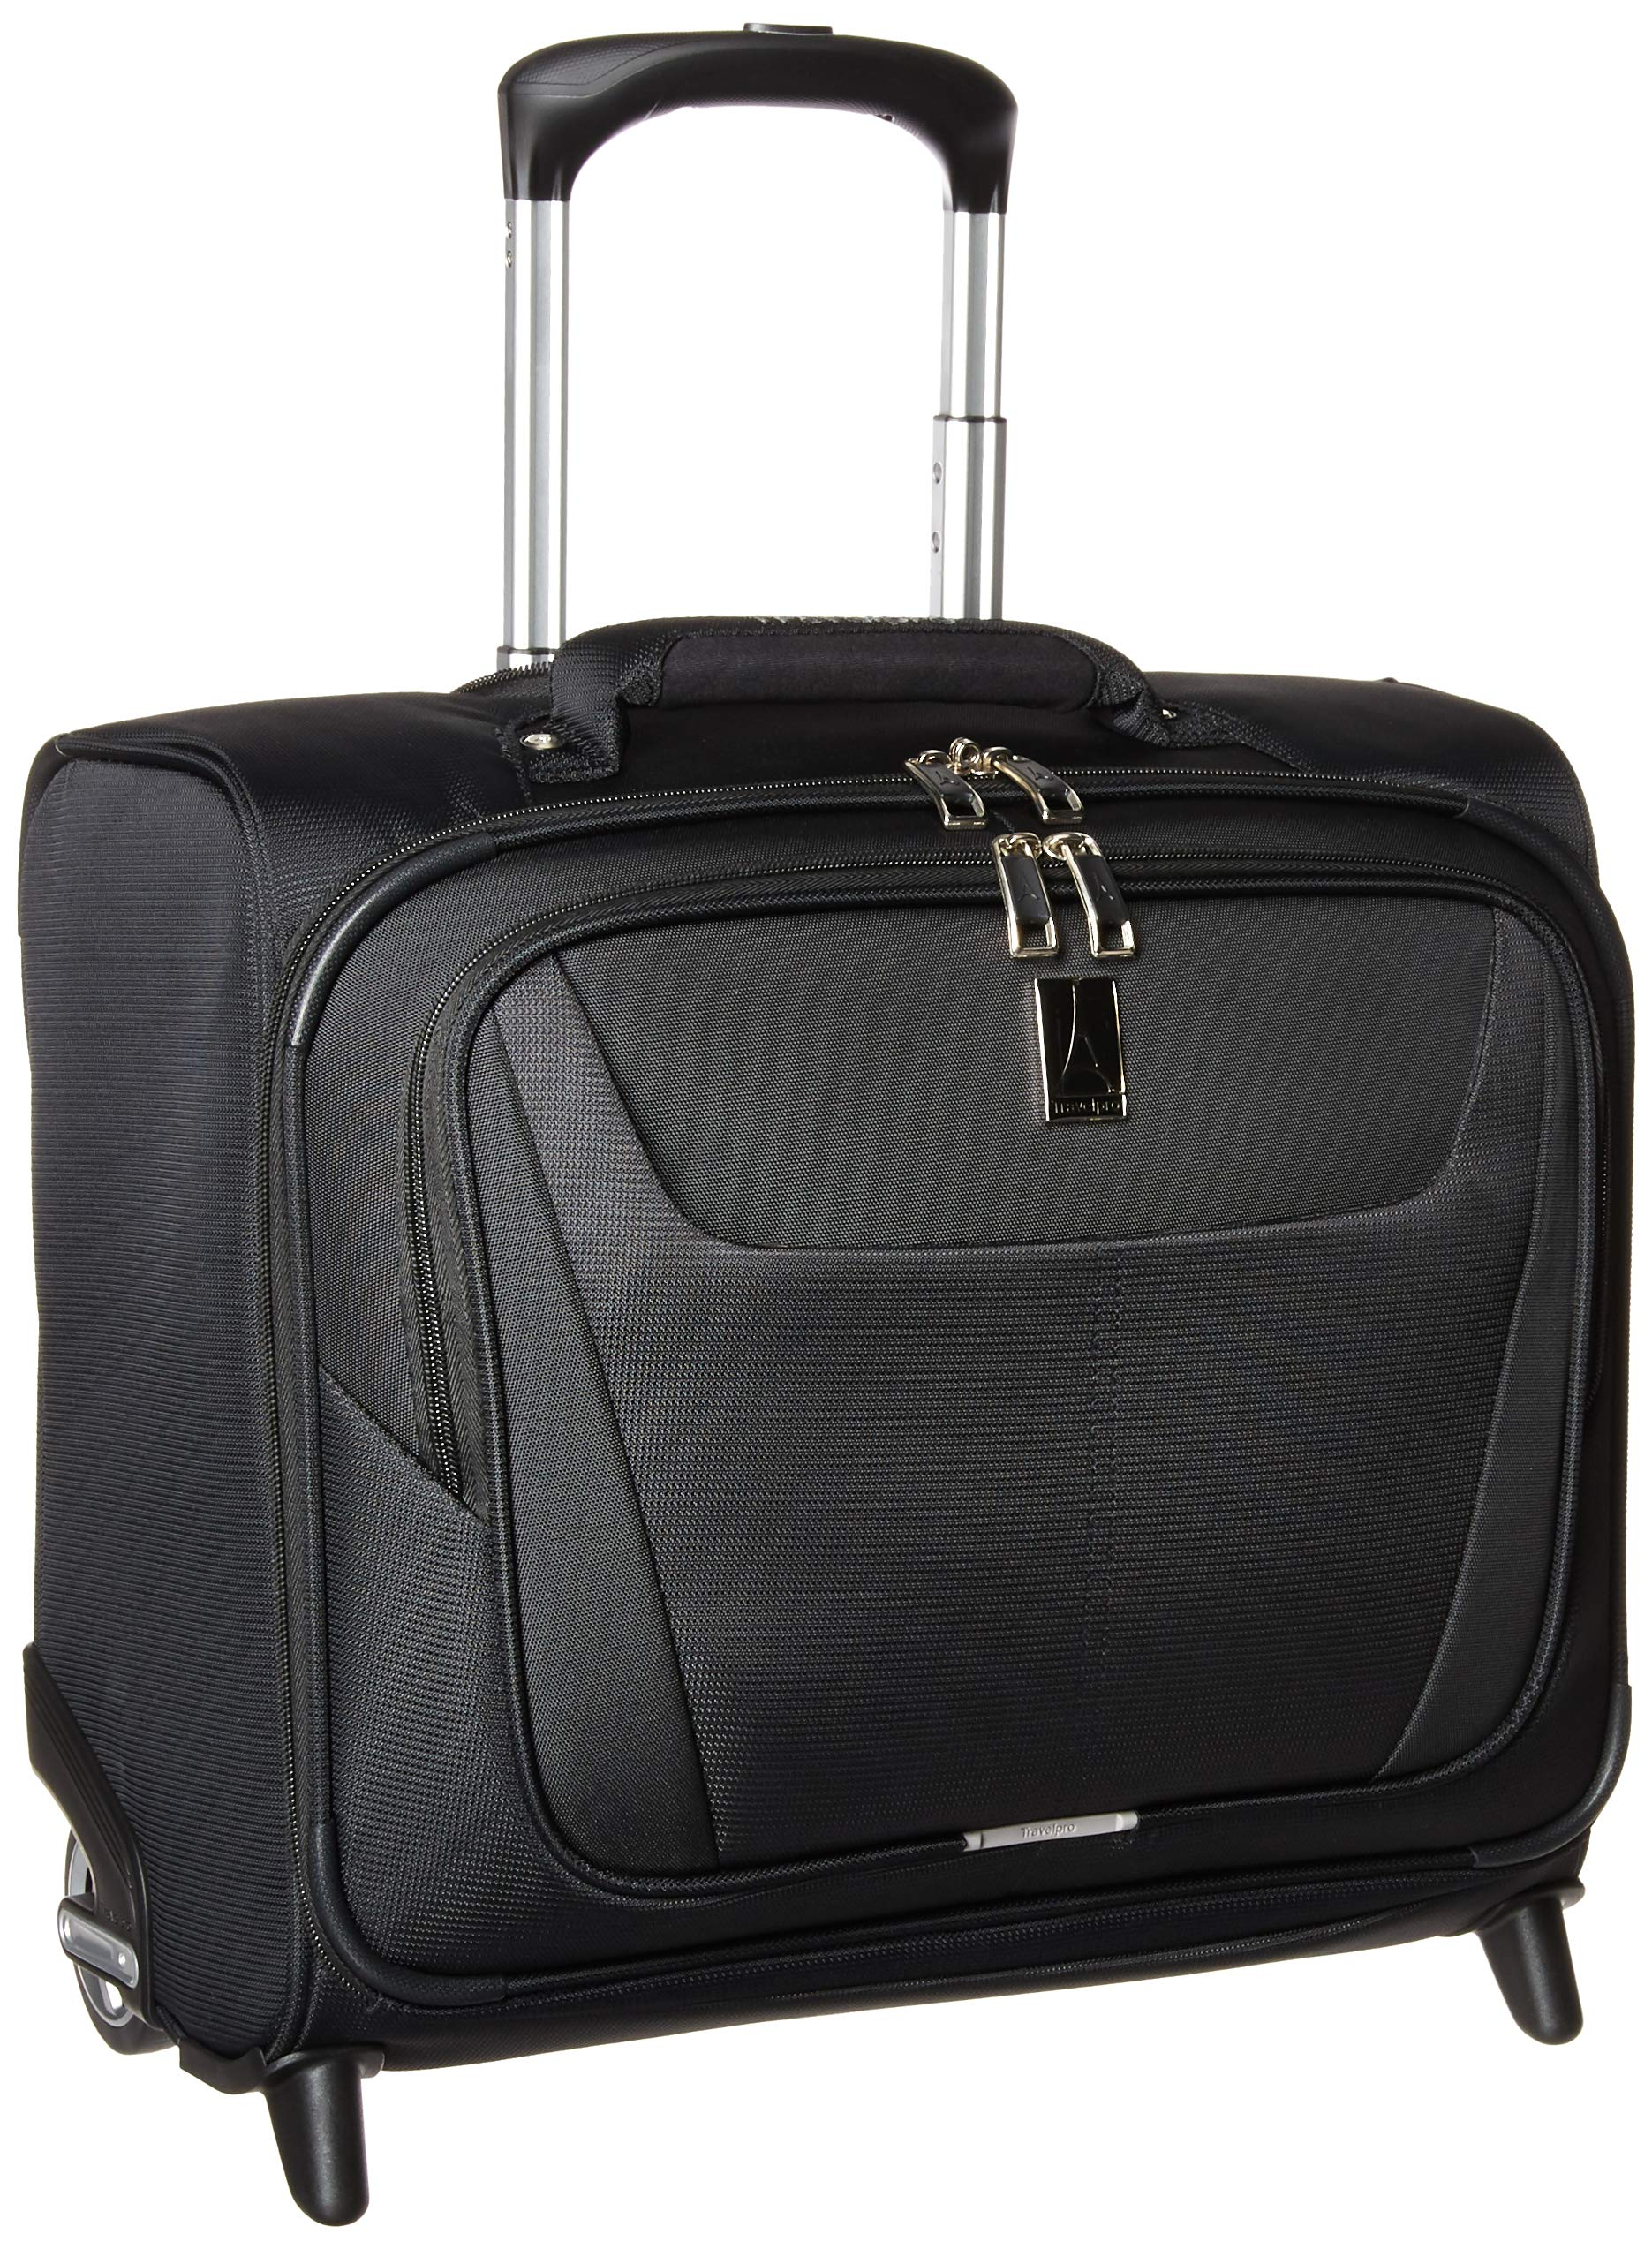 Travelpro Luggage Maxlite 5 16'' Lightweight Carry-on Rolling Tote Suitcase, Black